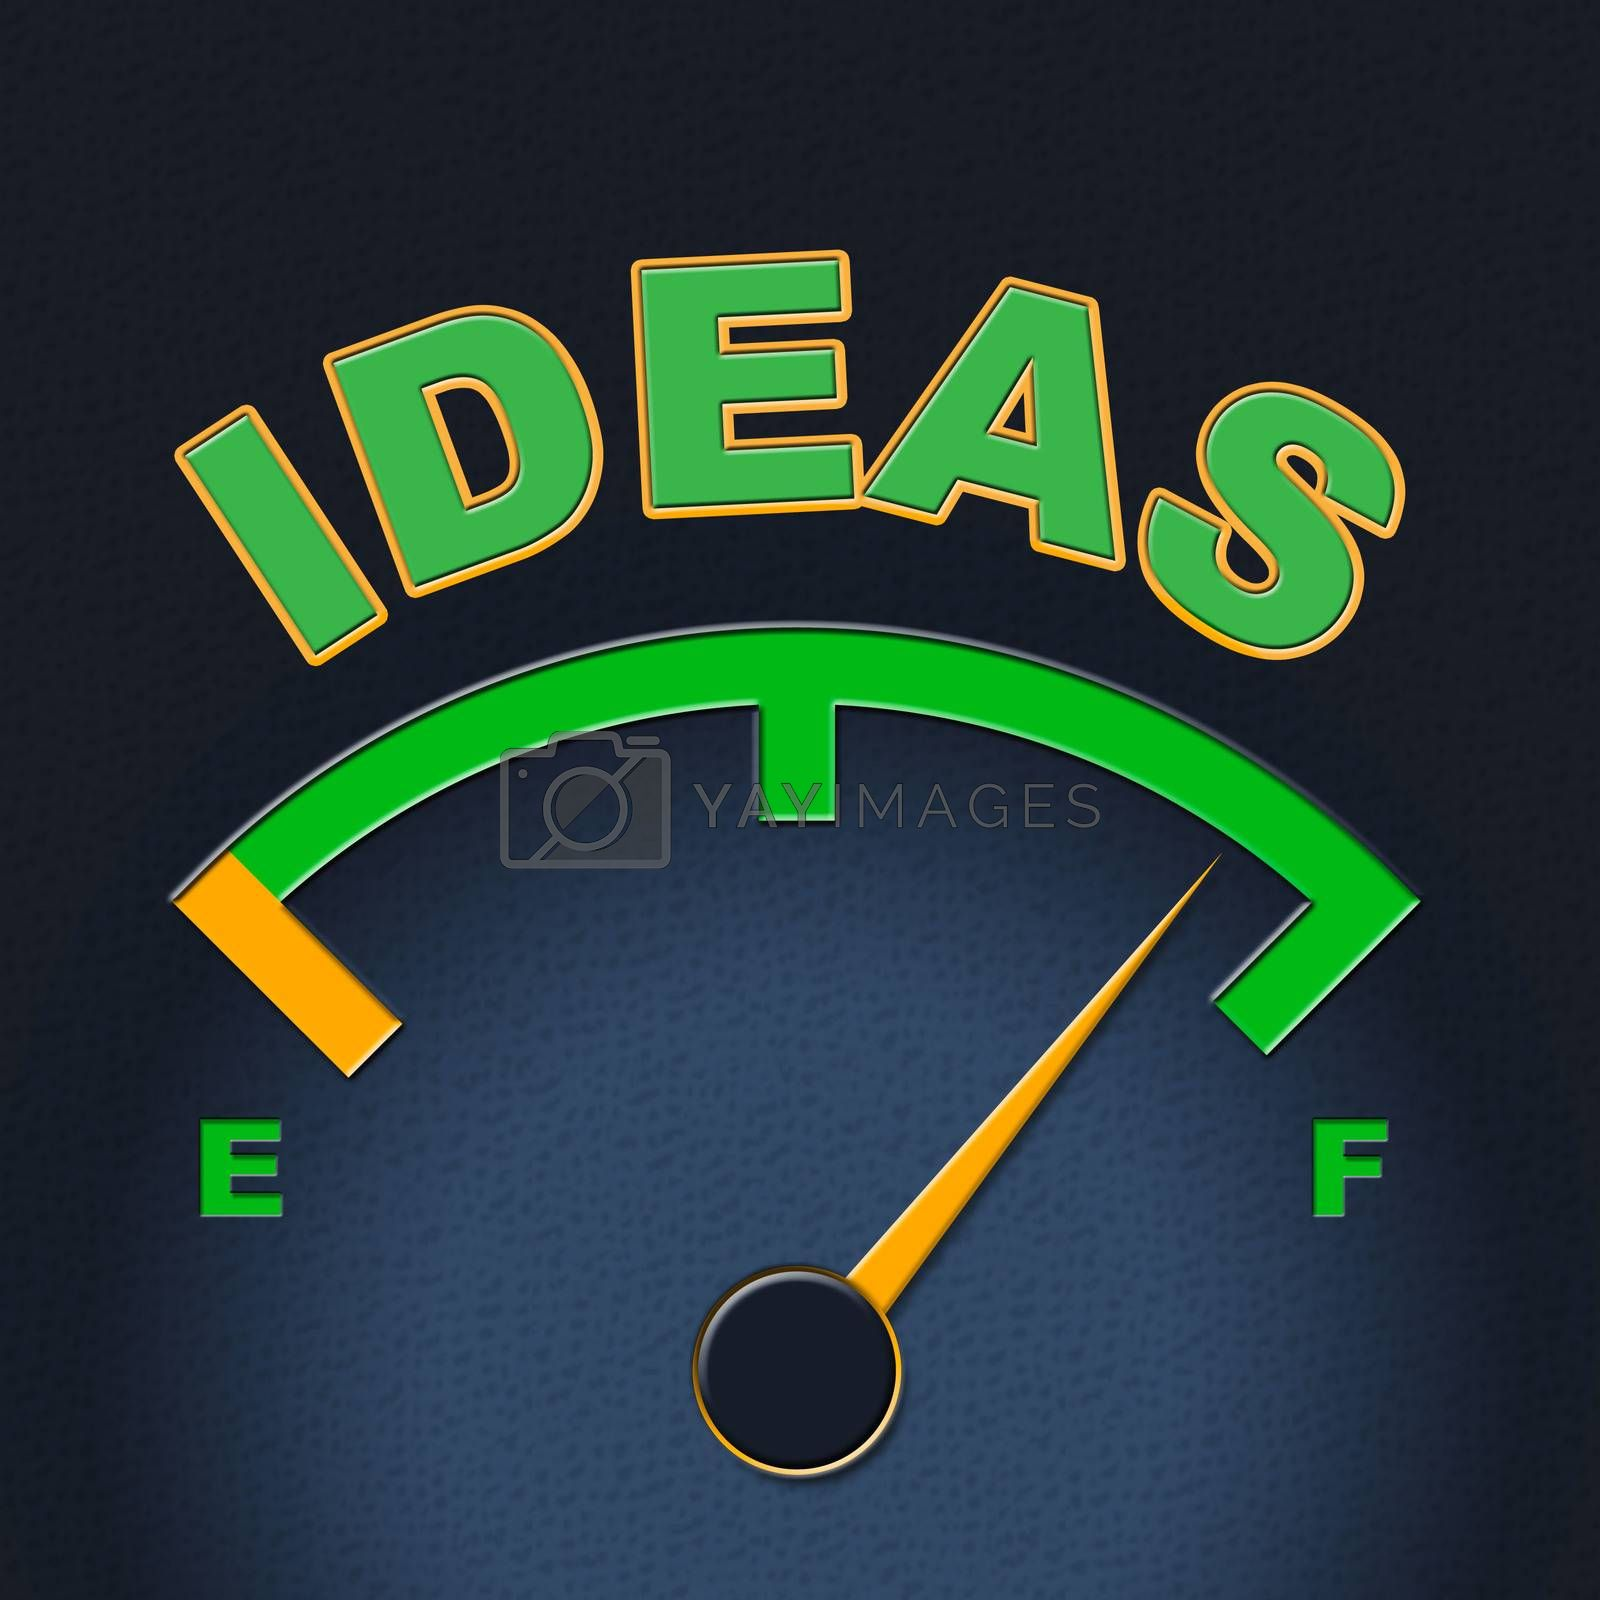 Ideas Gauge Indicates Display Concepts And Inventions by stuartmiles